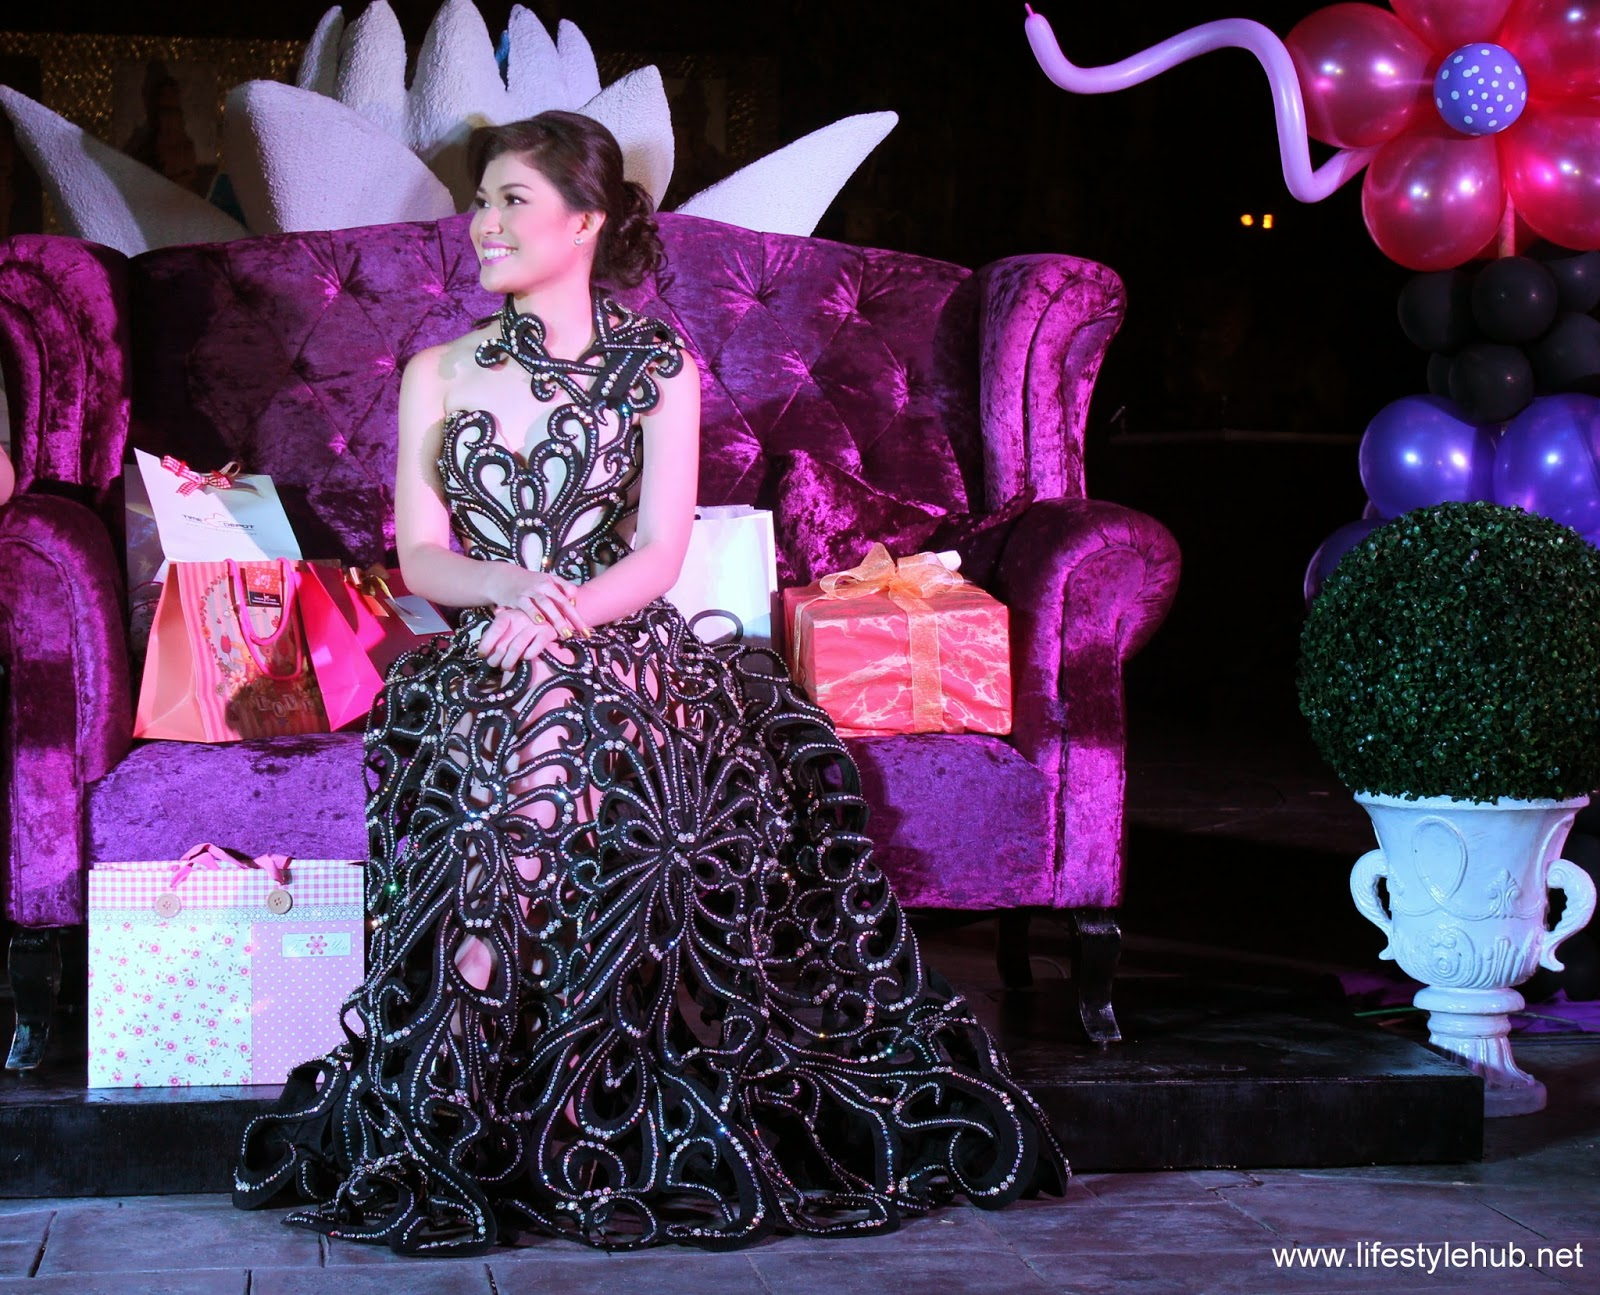 thea tolentino 18th birthday, debut